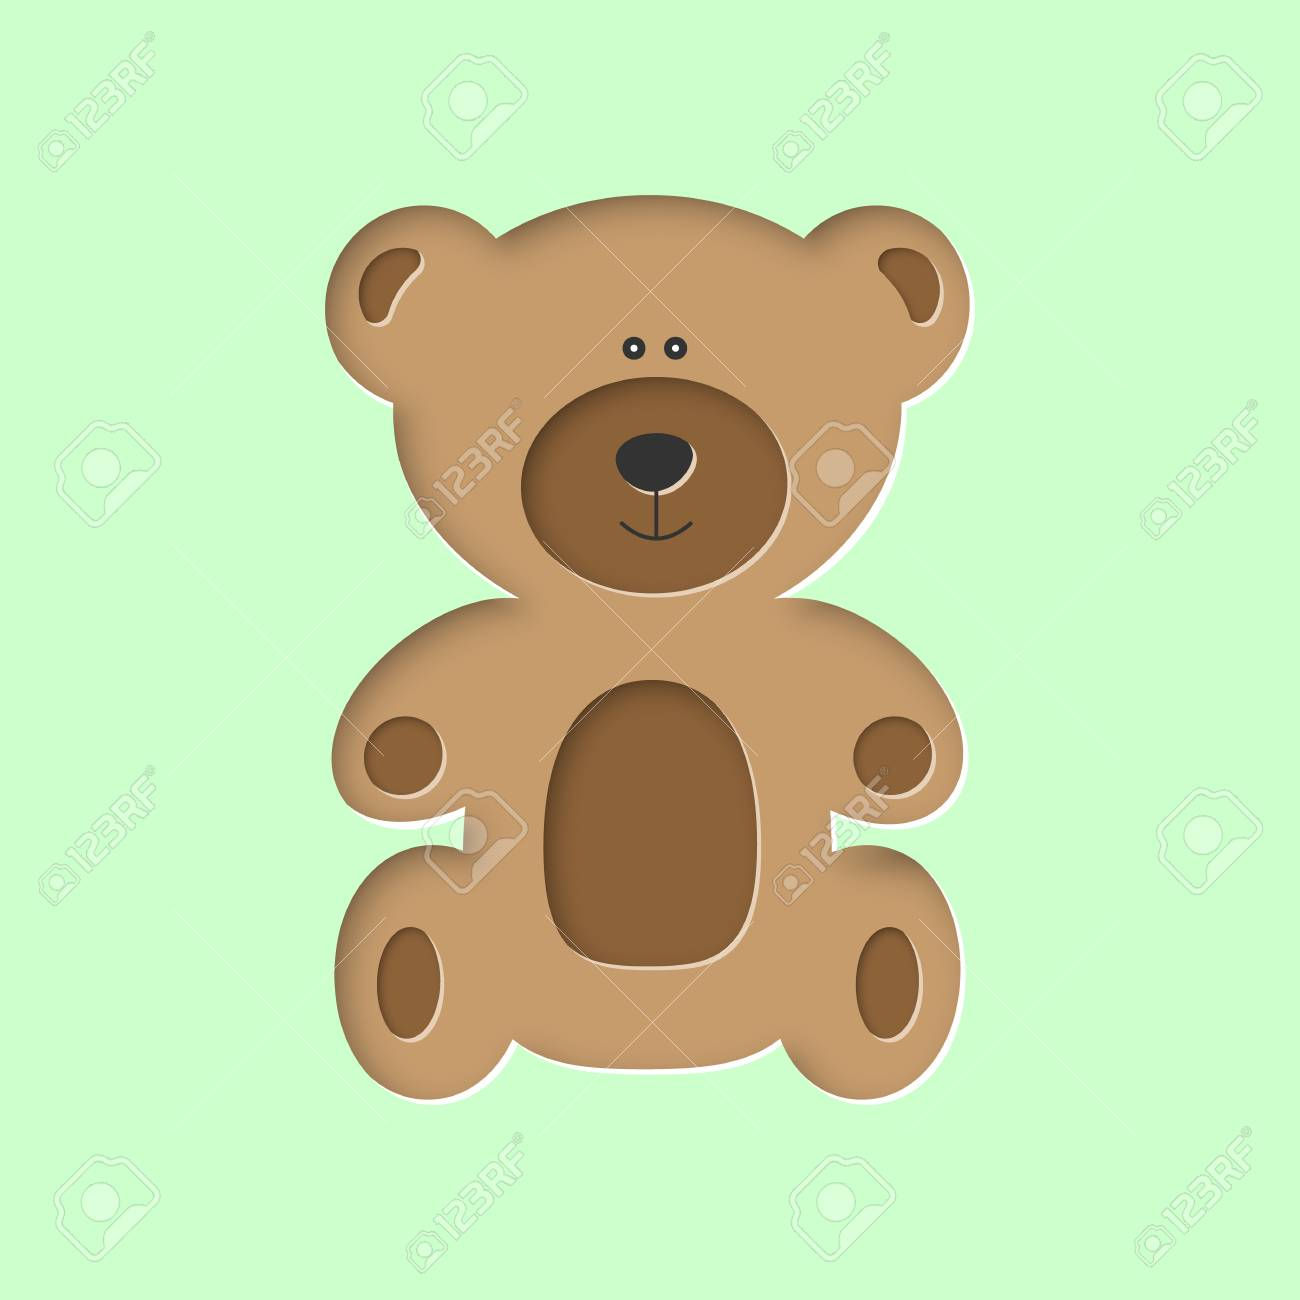 Sitting Cute Forest Brown Baby Bear Toy In Paper Cut Craft Style